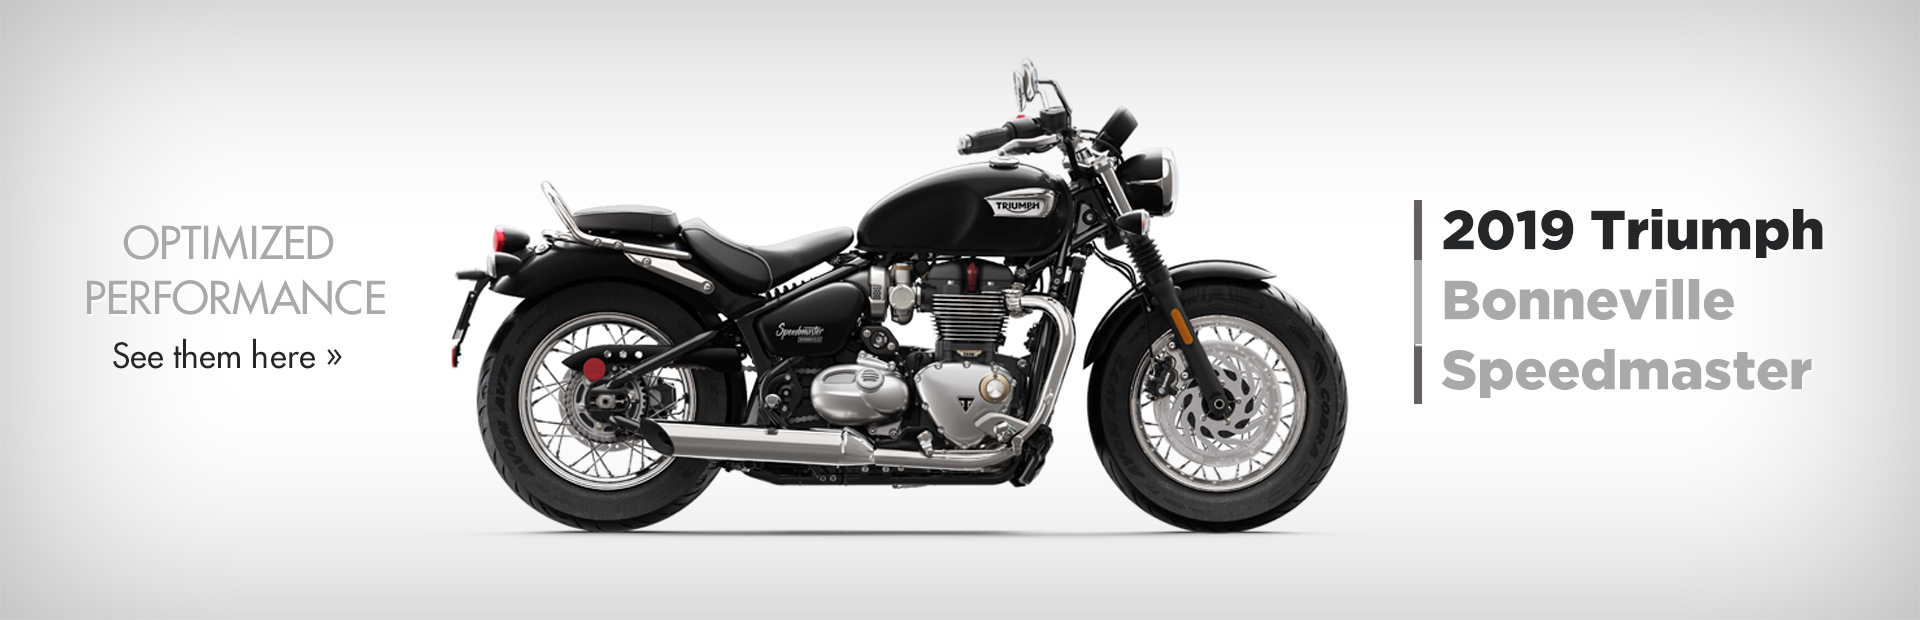 2019 Triumph Bonneville Speedmaster: Click here to view the models.